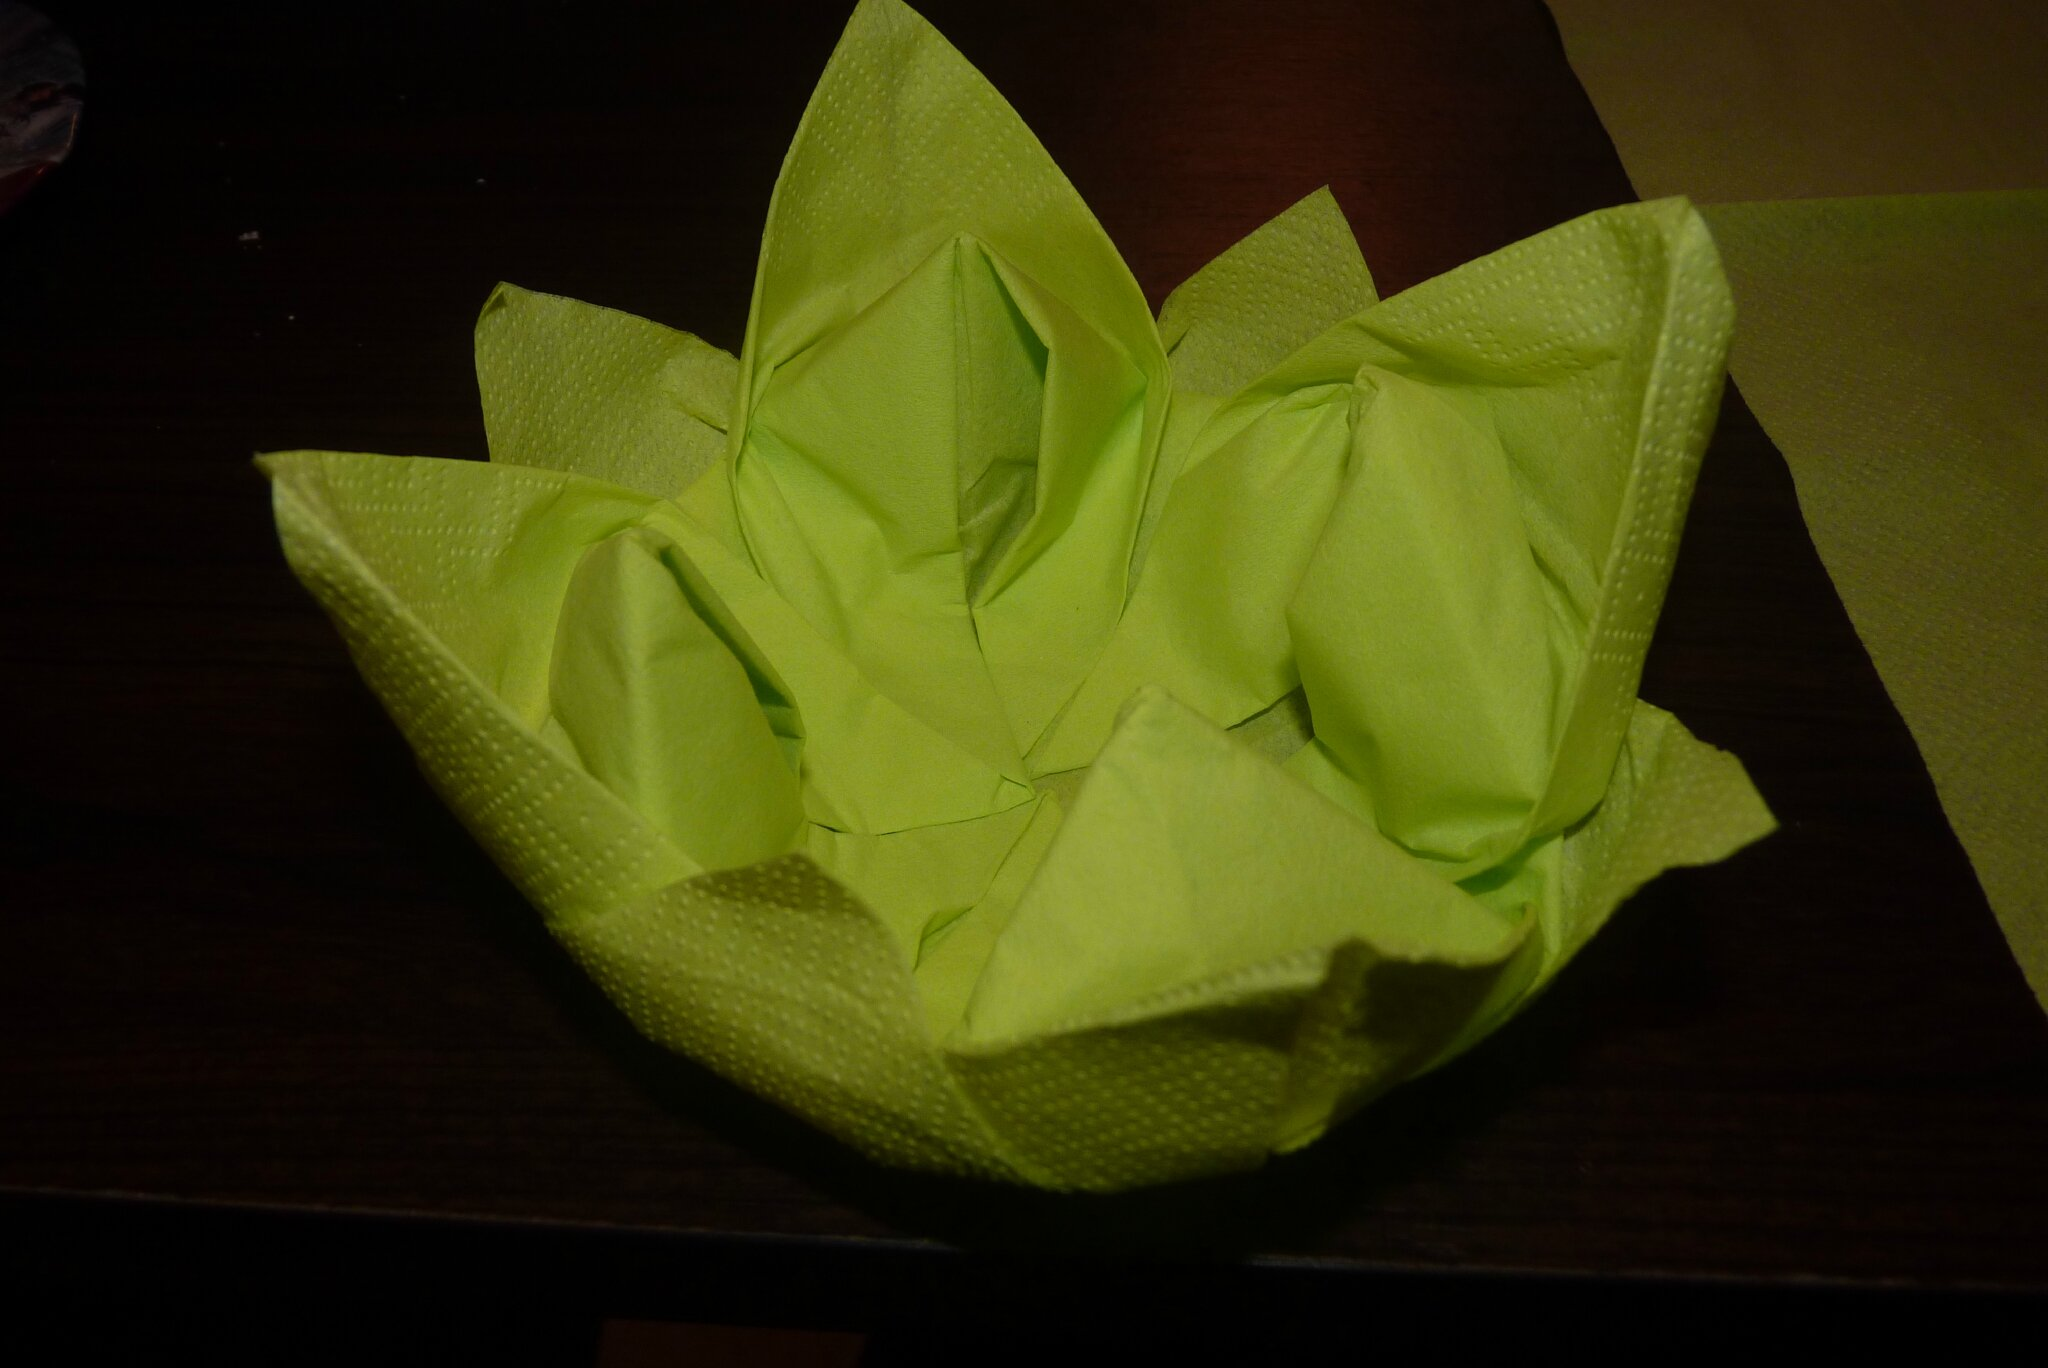 Pliage De Serviette En Lotus Tutoriel Pliage De Serviette Fleur De Lotus Nénuphar